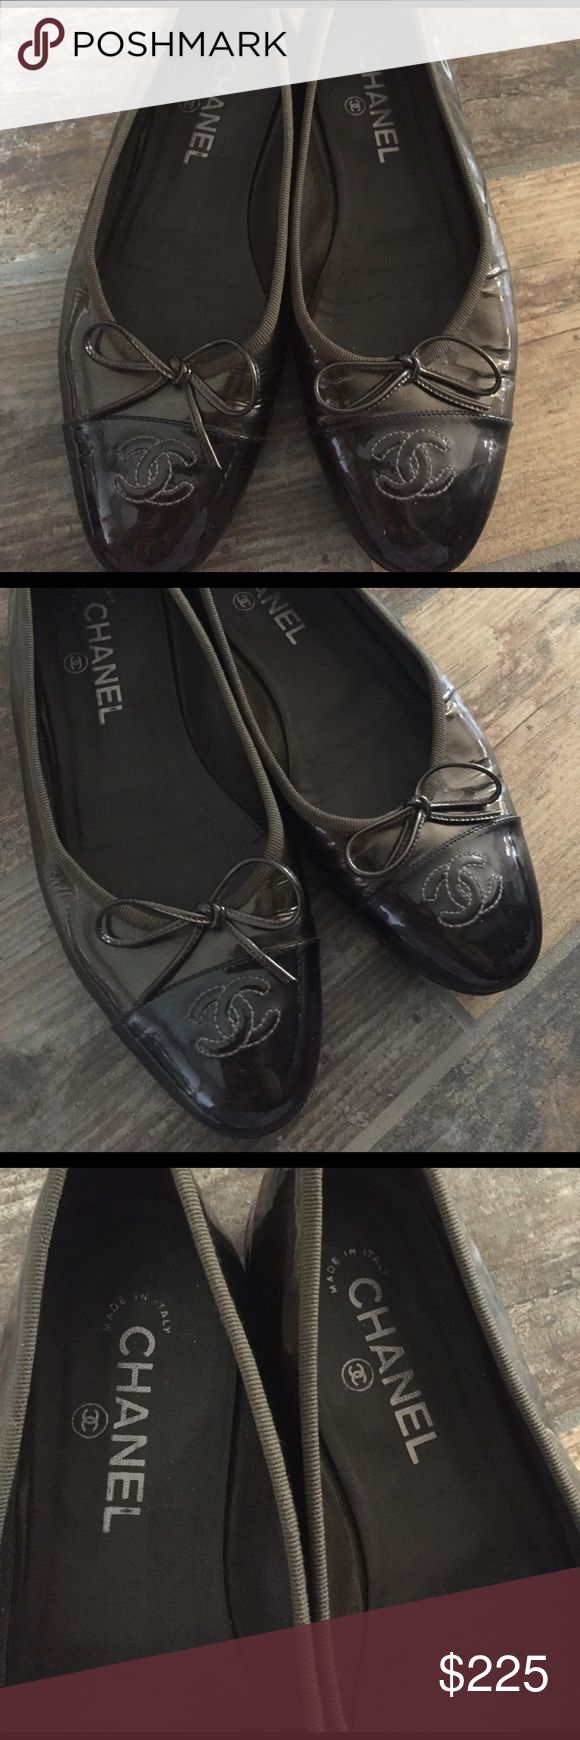 CHANEL Metallic Ballet Flats Authentic Chanel ballet flats, good used condition, some creasing in the patent leather, pewter/dark grey metallic color, size 38.5. These pre-date having model number stamped inside. CHANEL Shoes Flats & Loafers